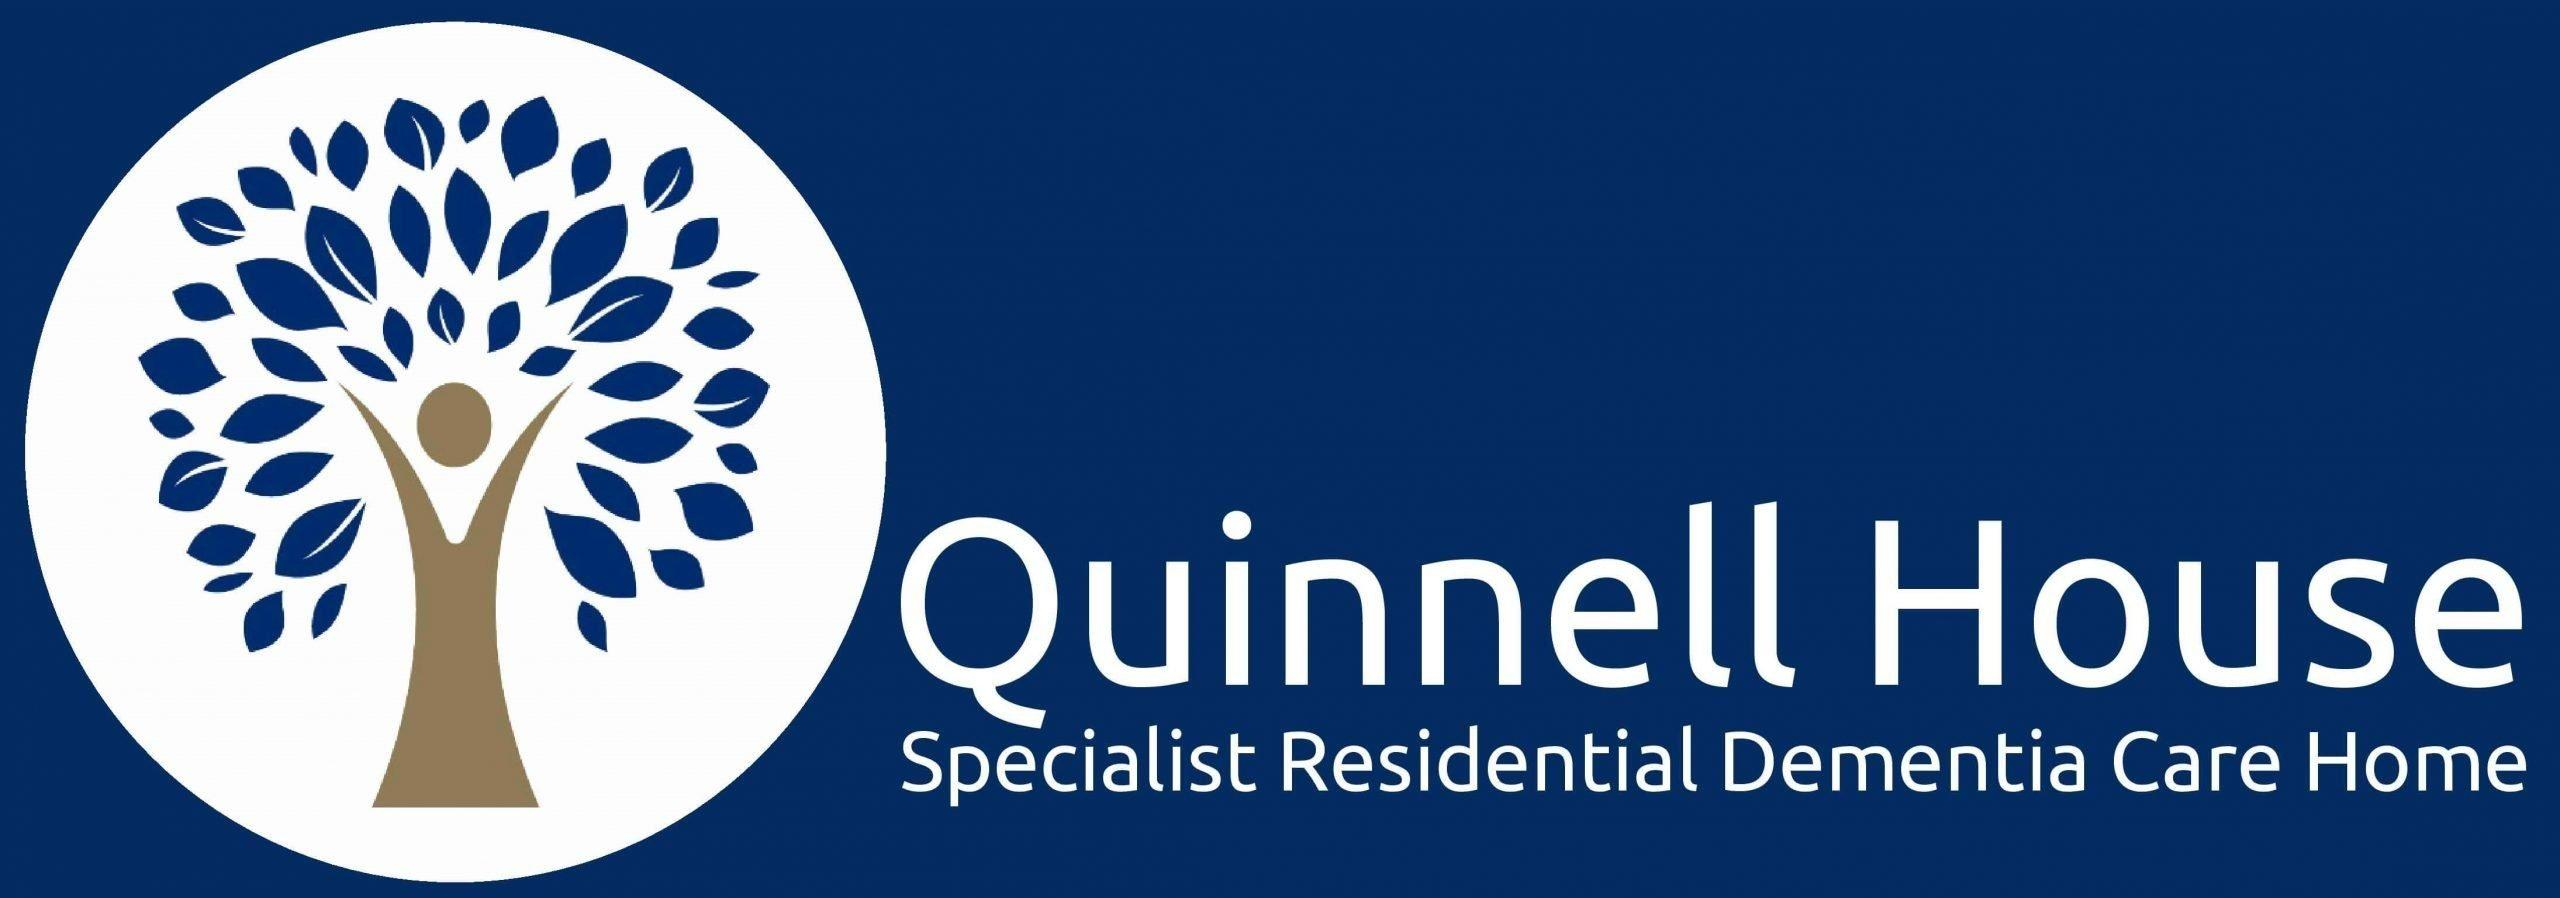 Quinnell House